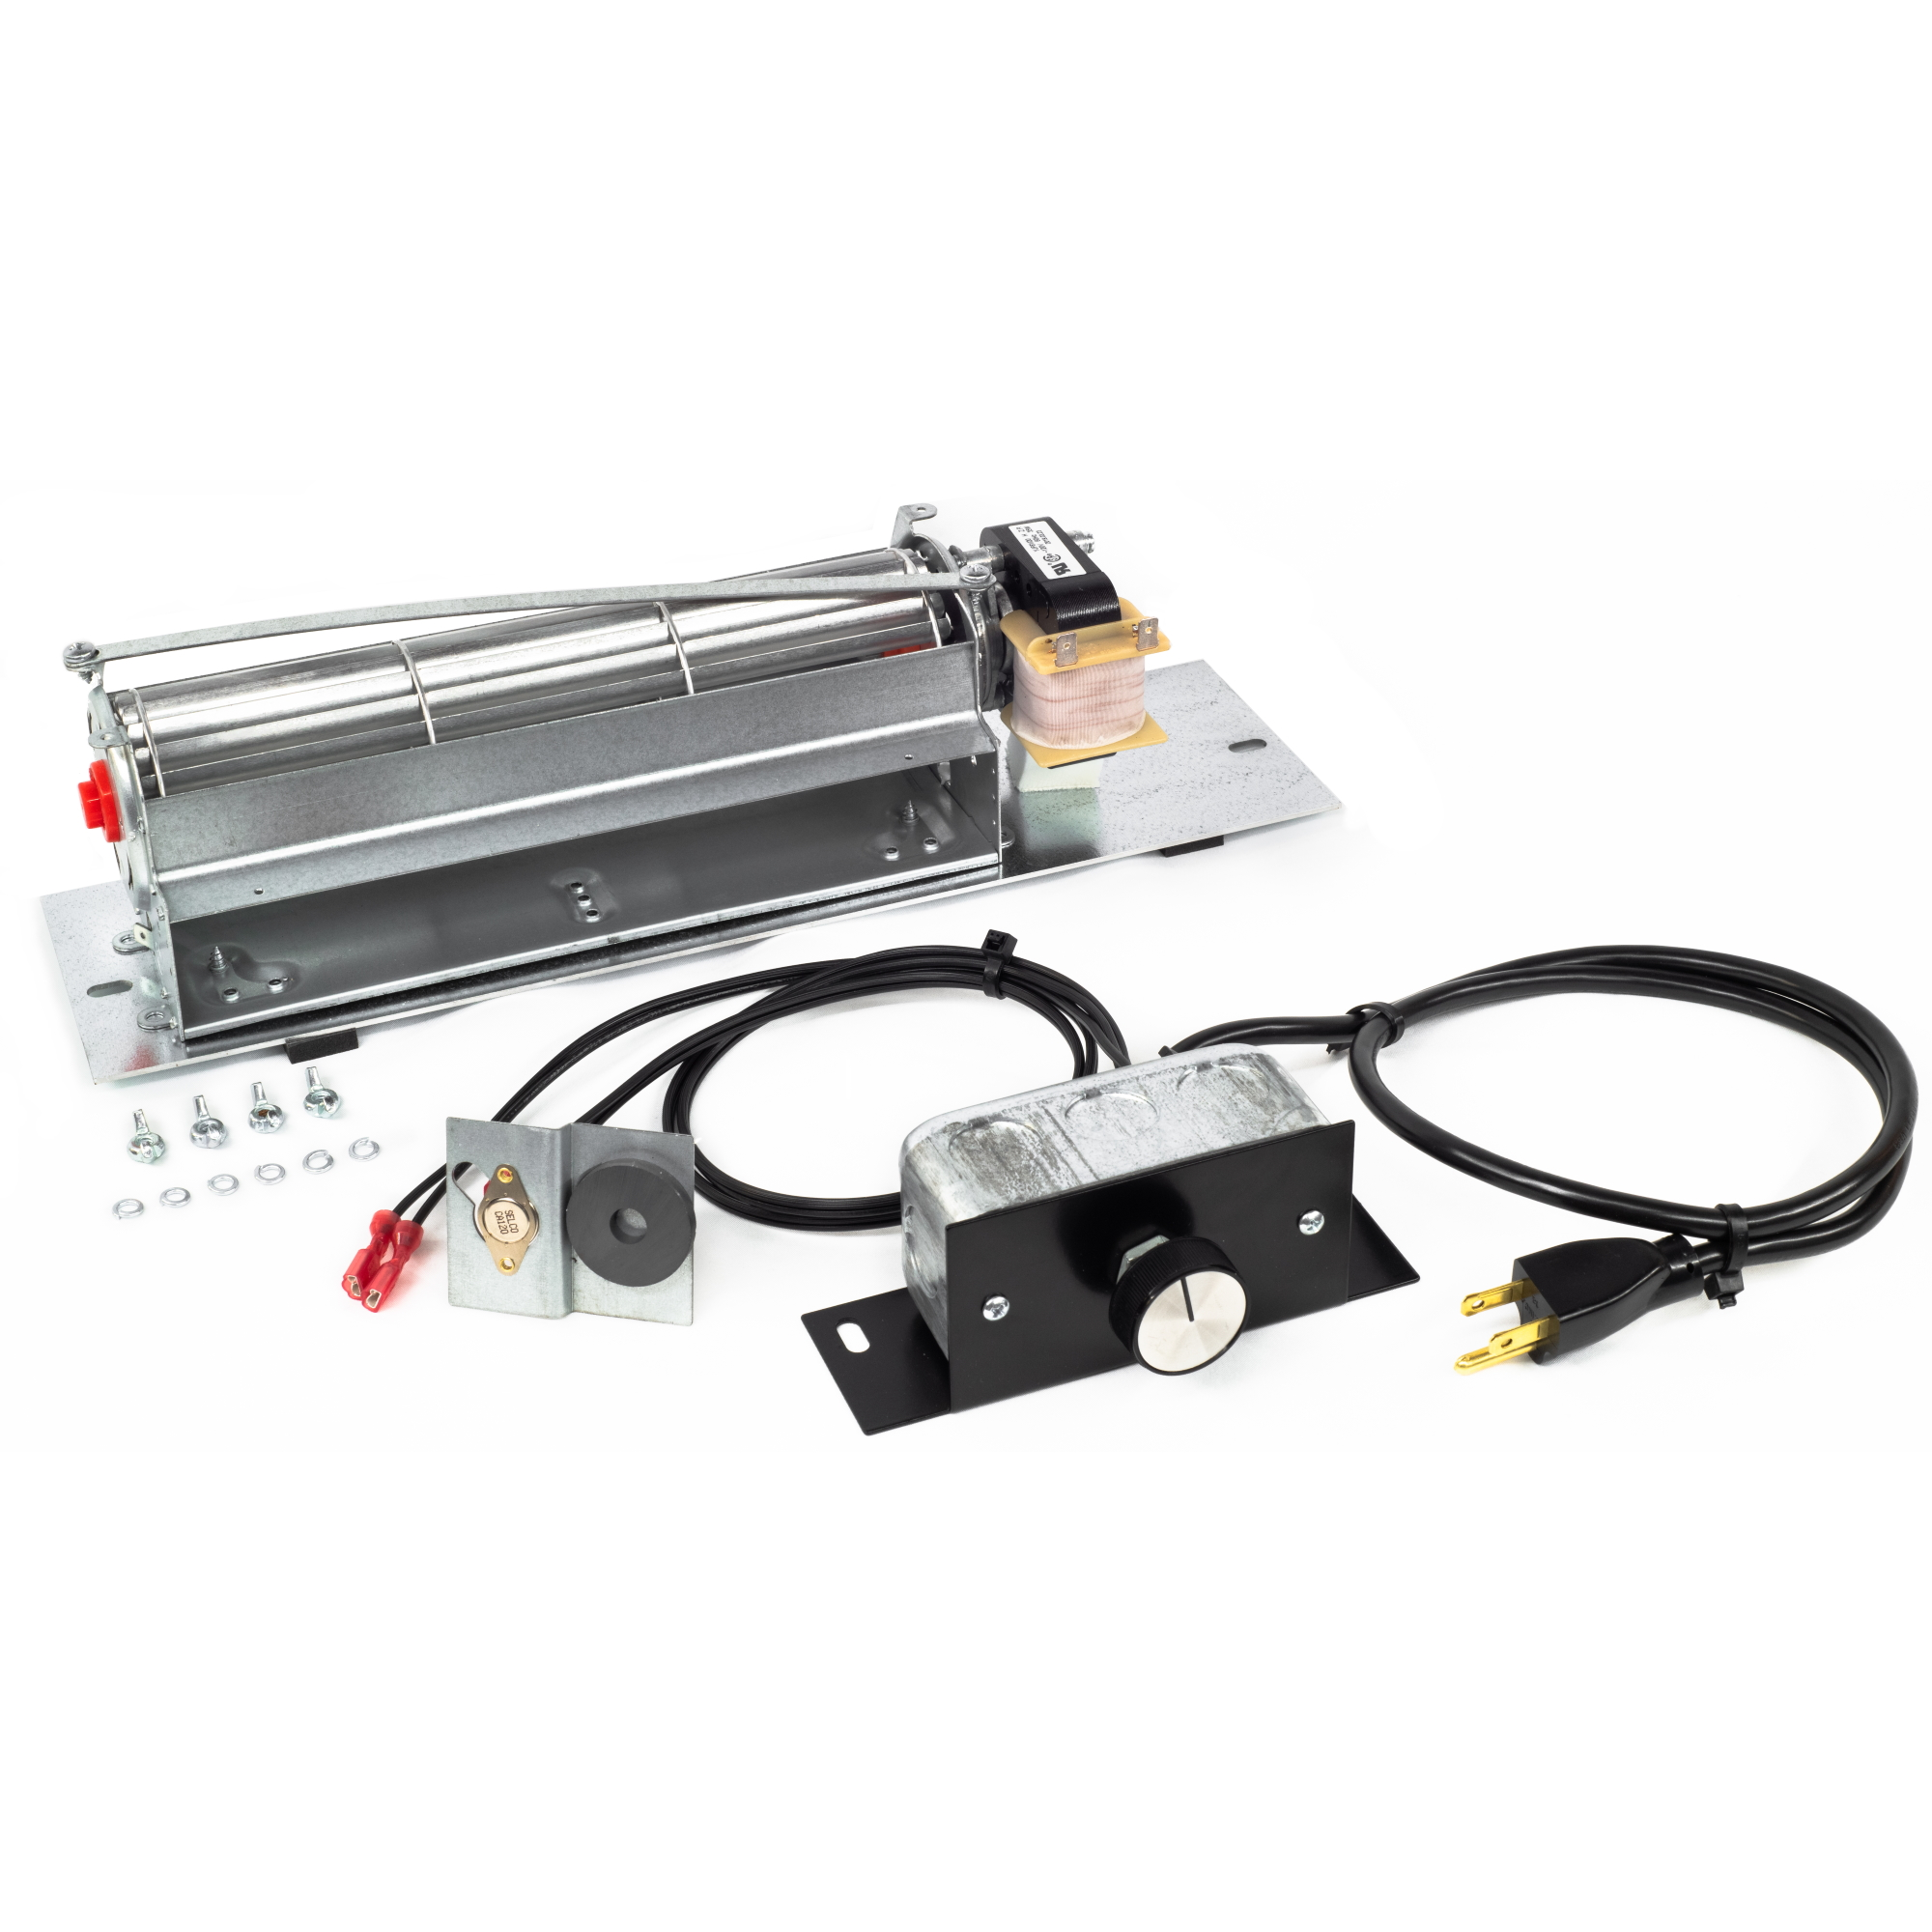 FK24 Fireplace Blower Kit for Majestic, Northern Flame & Vermont Castings Fireplaces